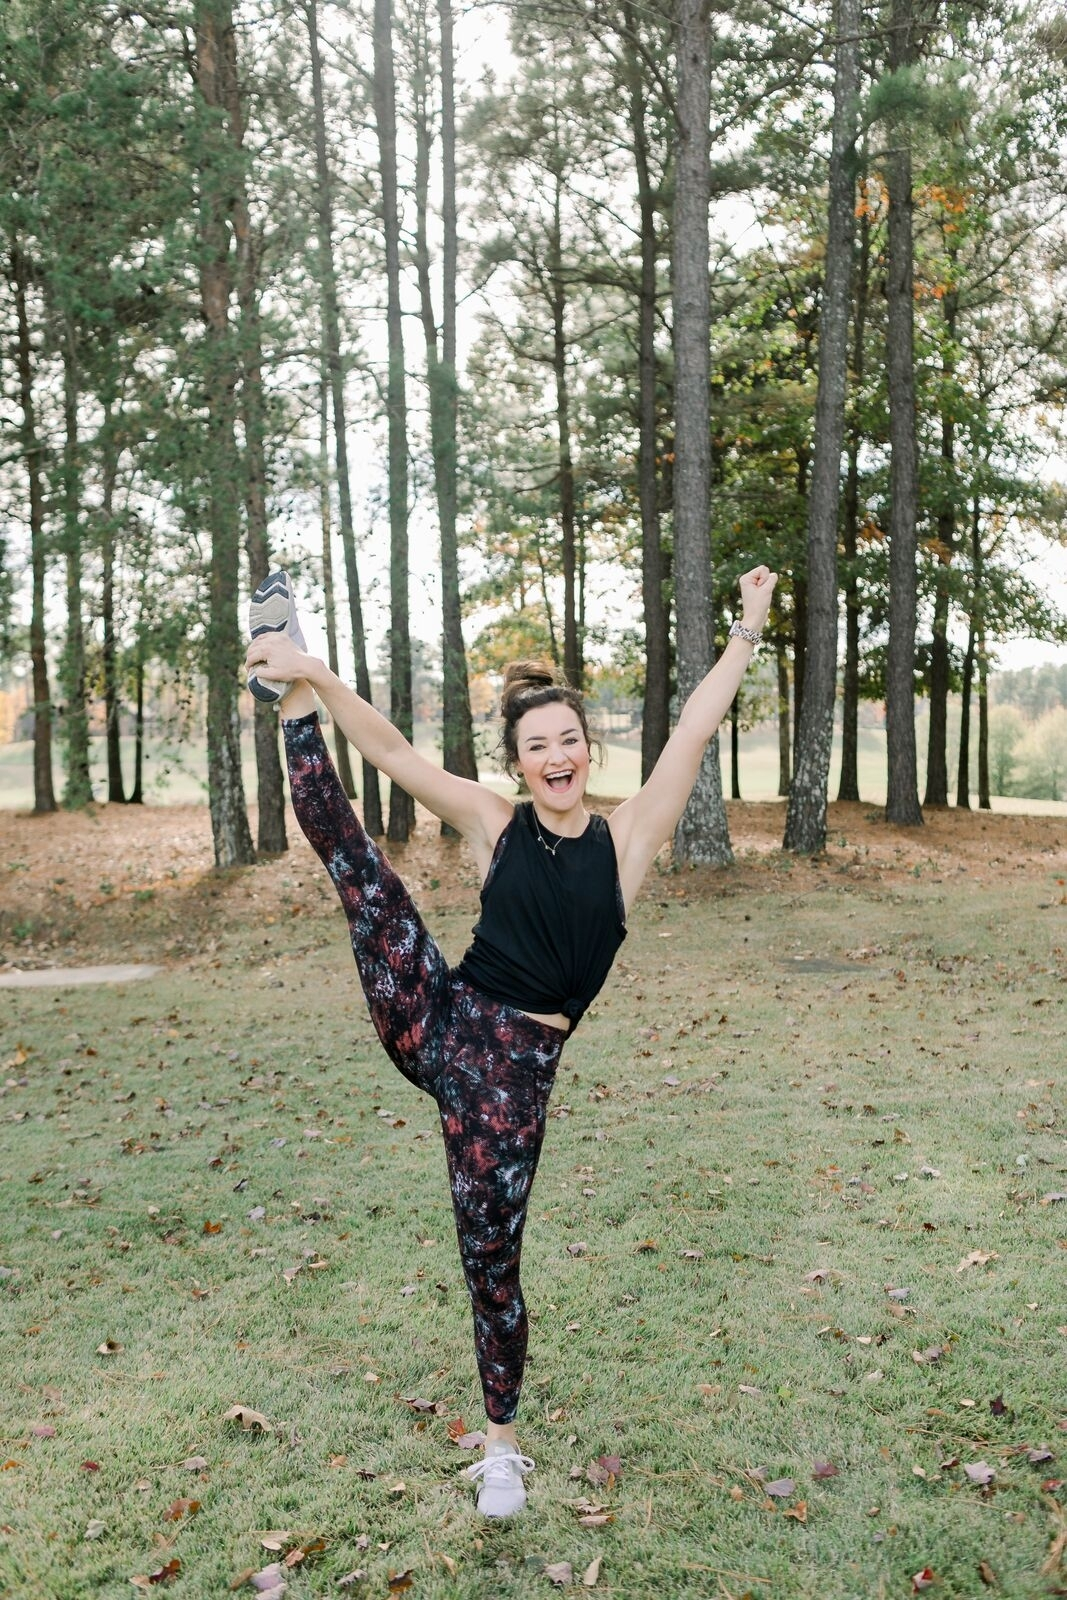 At Home Workouts For Moms by Alabama Life + Style Blogger, Heather Brown // My Life Well Loved